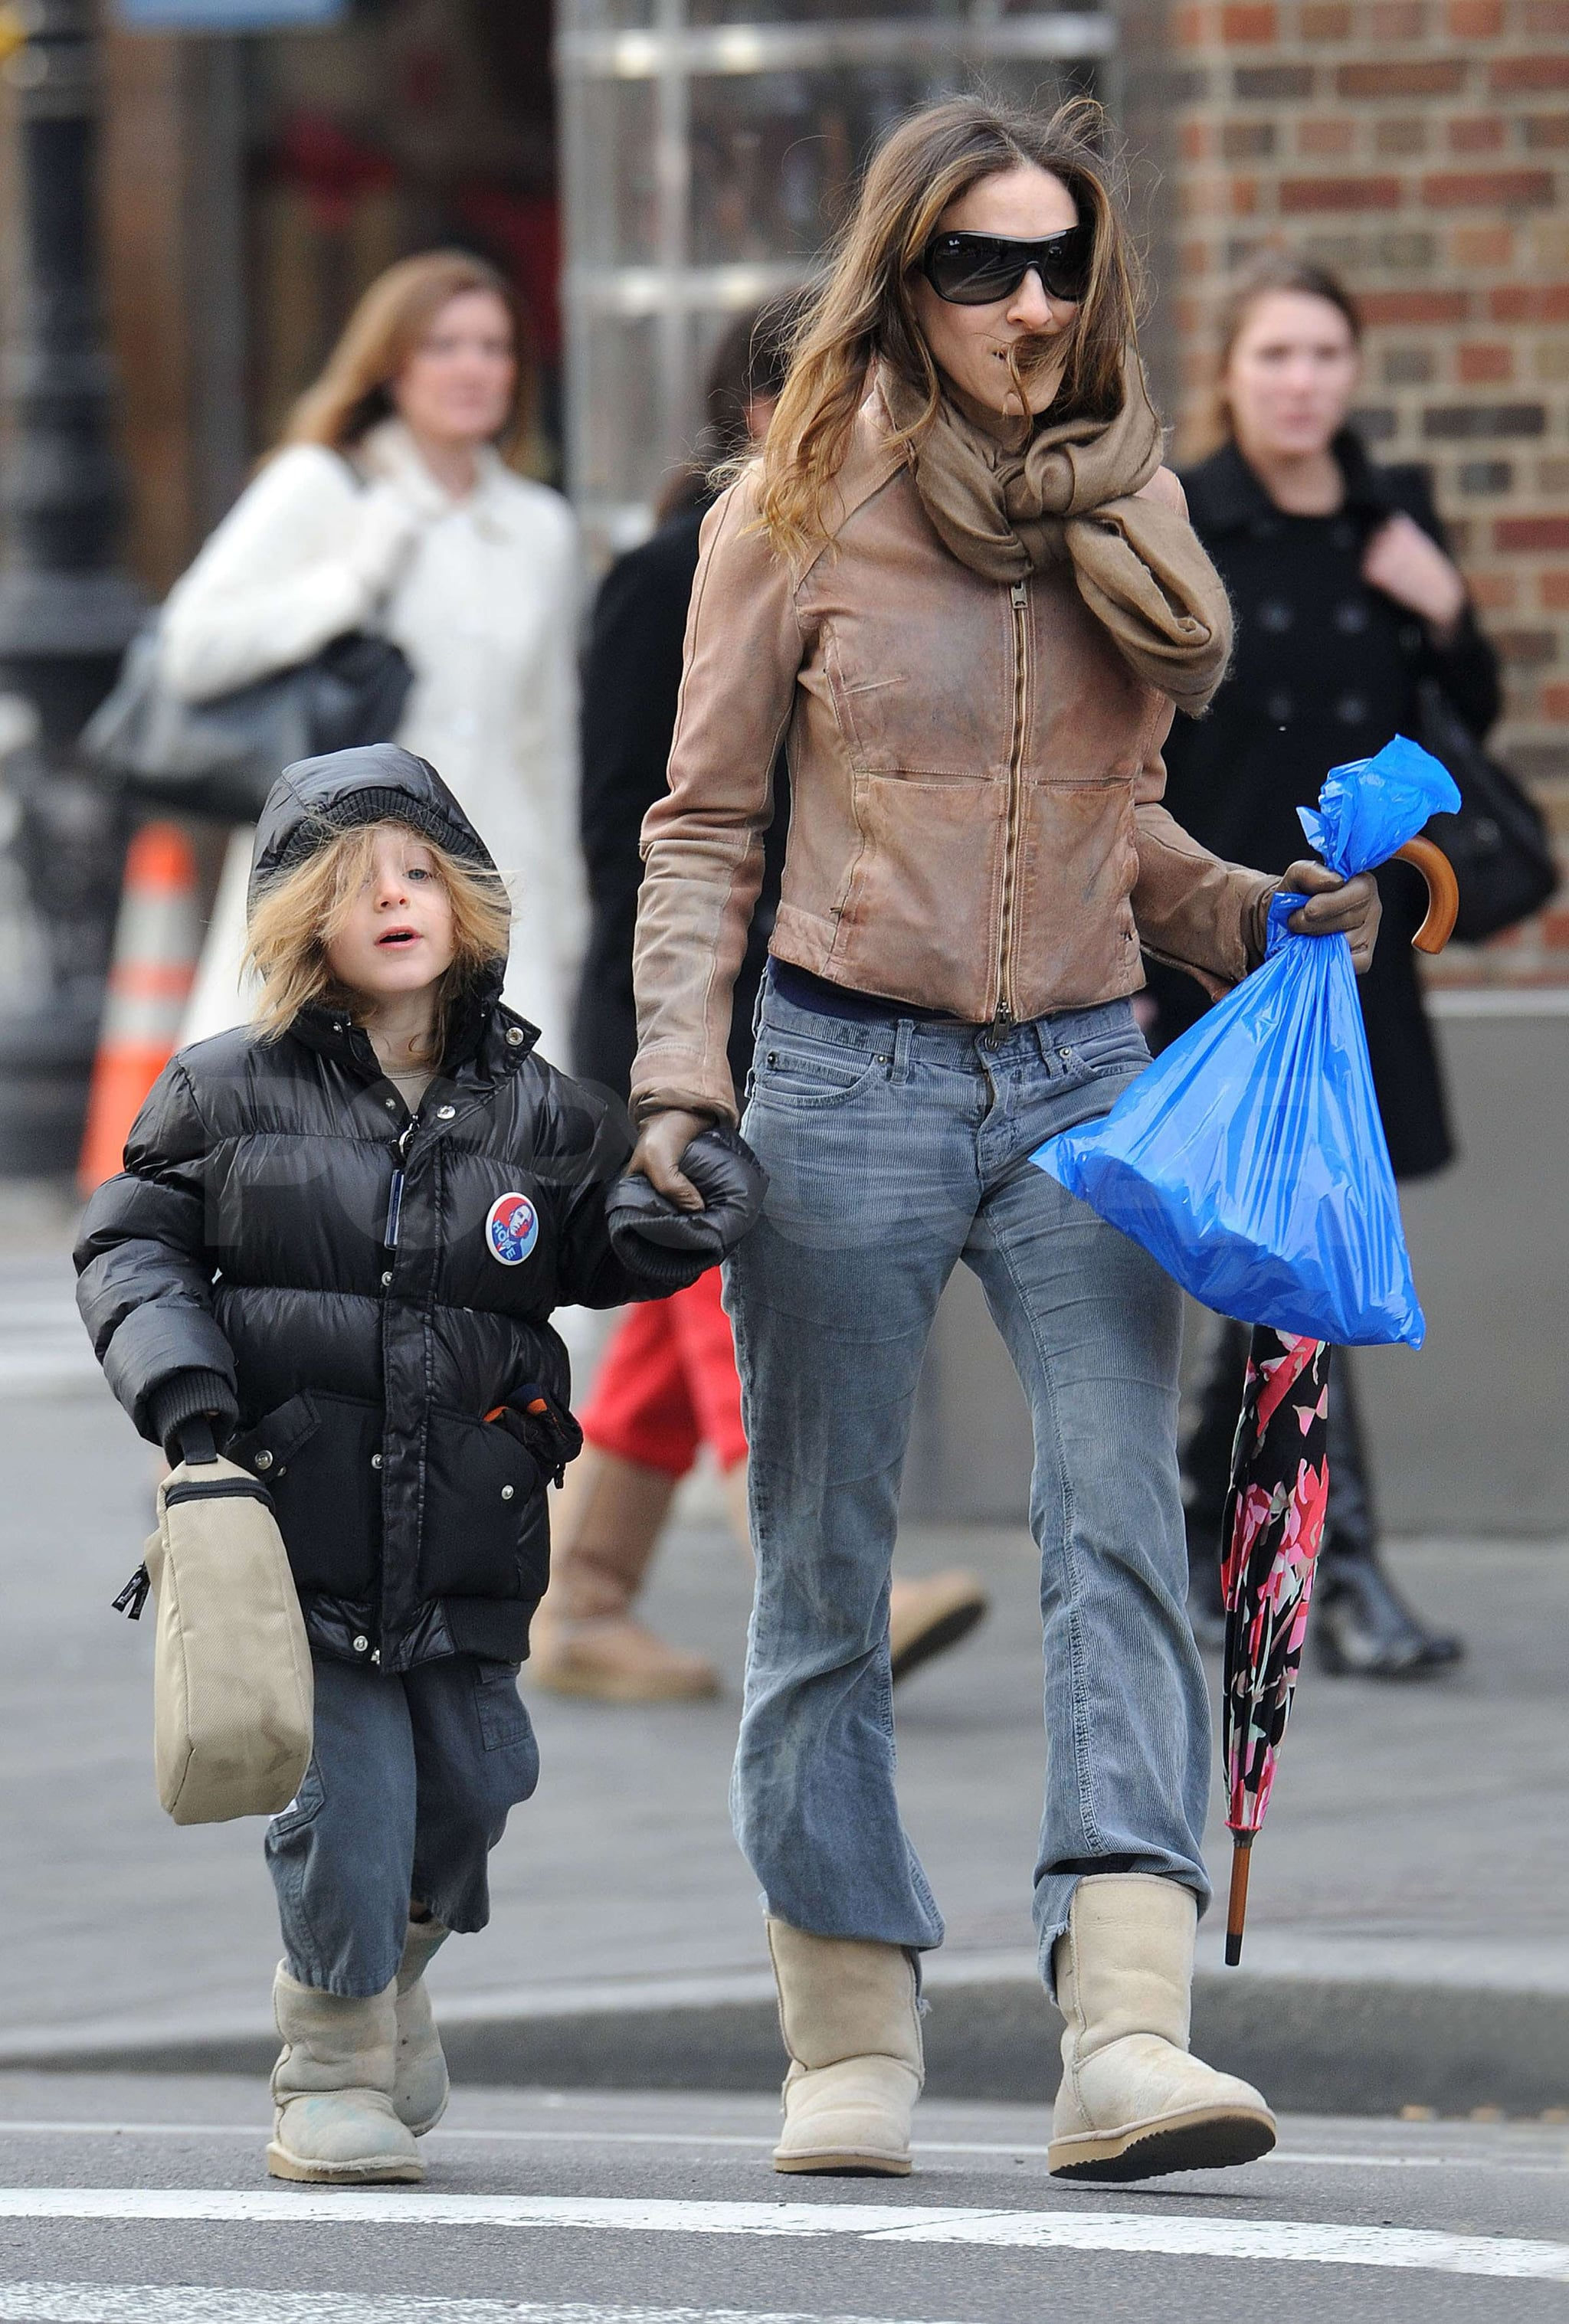 Photos of Sarah Jessica Parker in NYC with her Son James Wikie Broderick